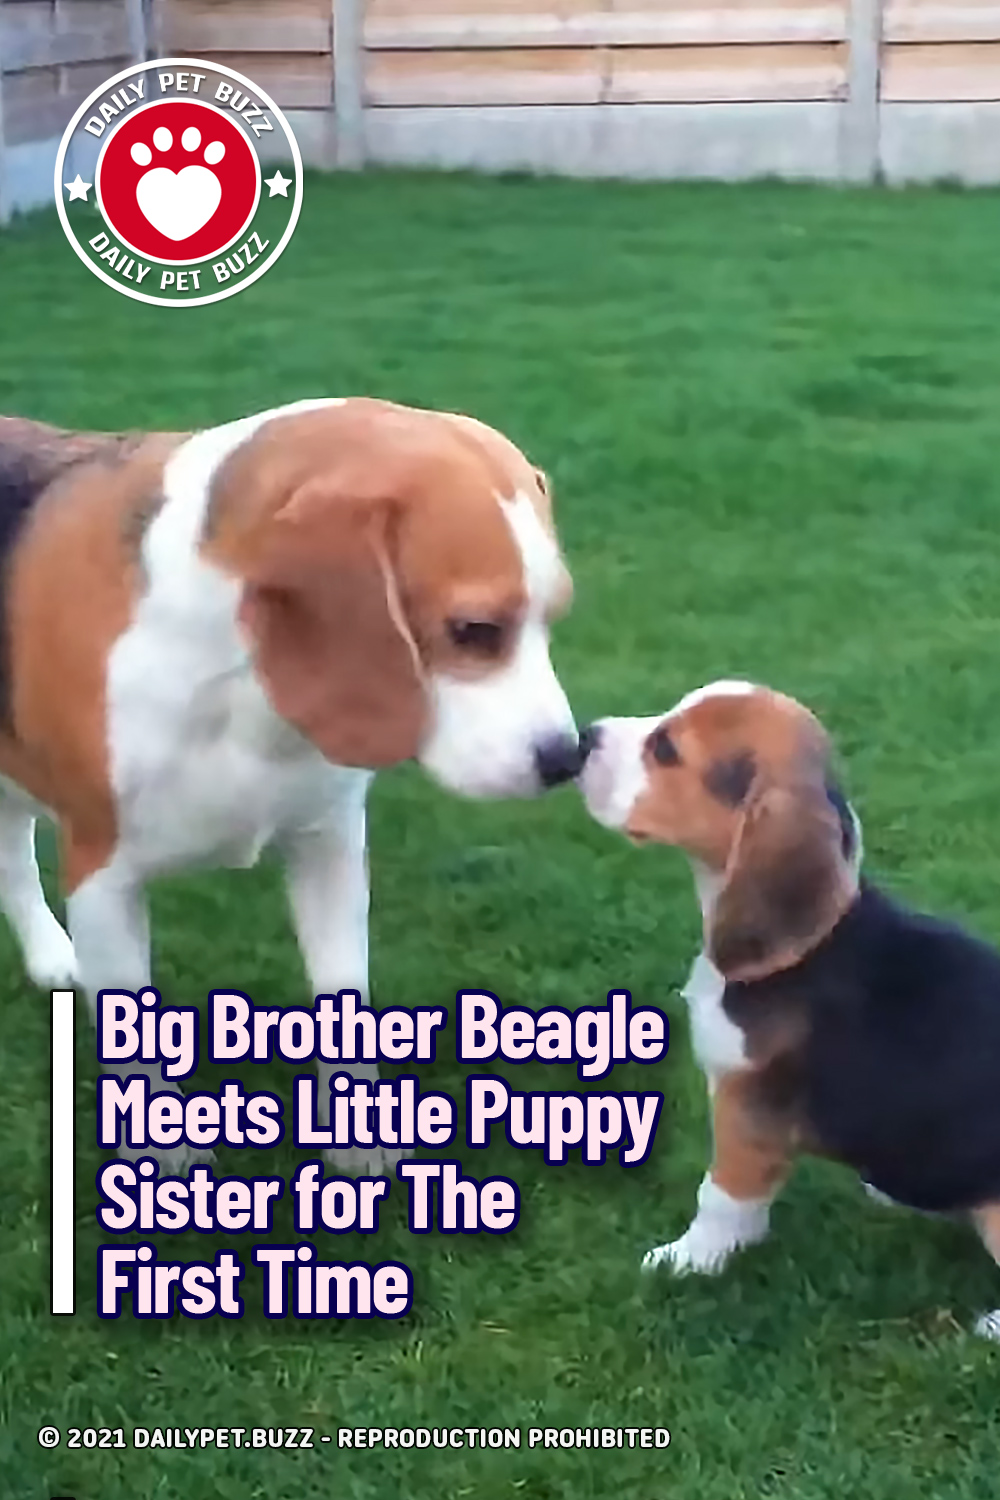 Big Brother Beagle Meets Little Puppy Sister for The First Time